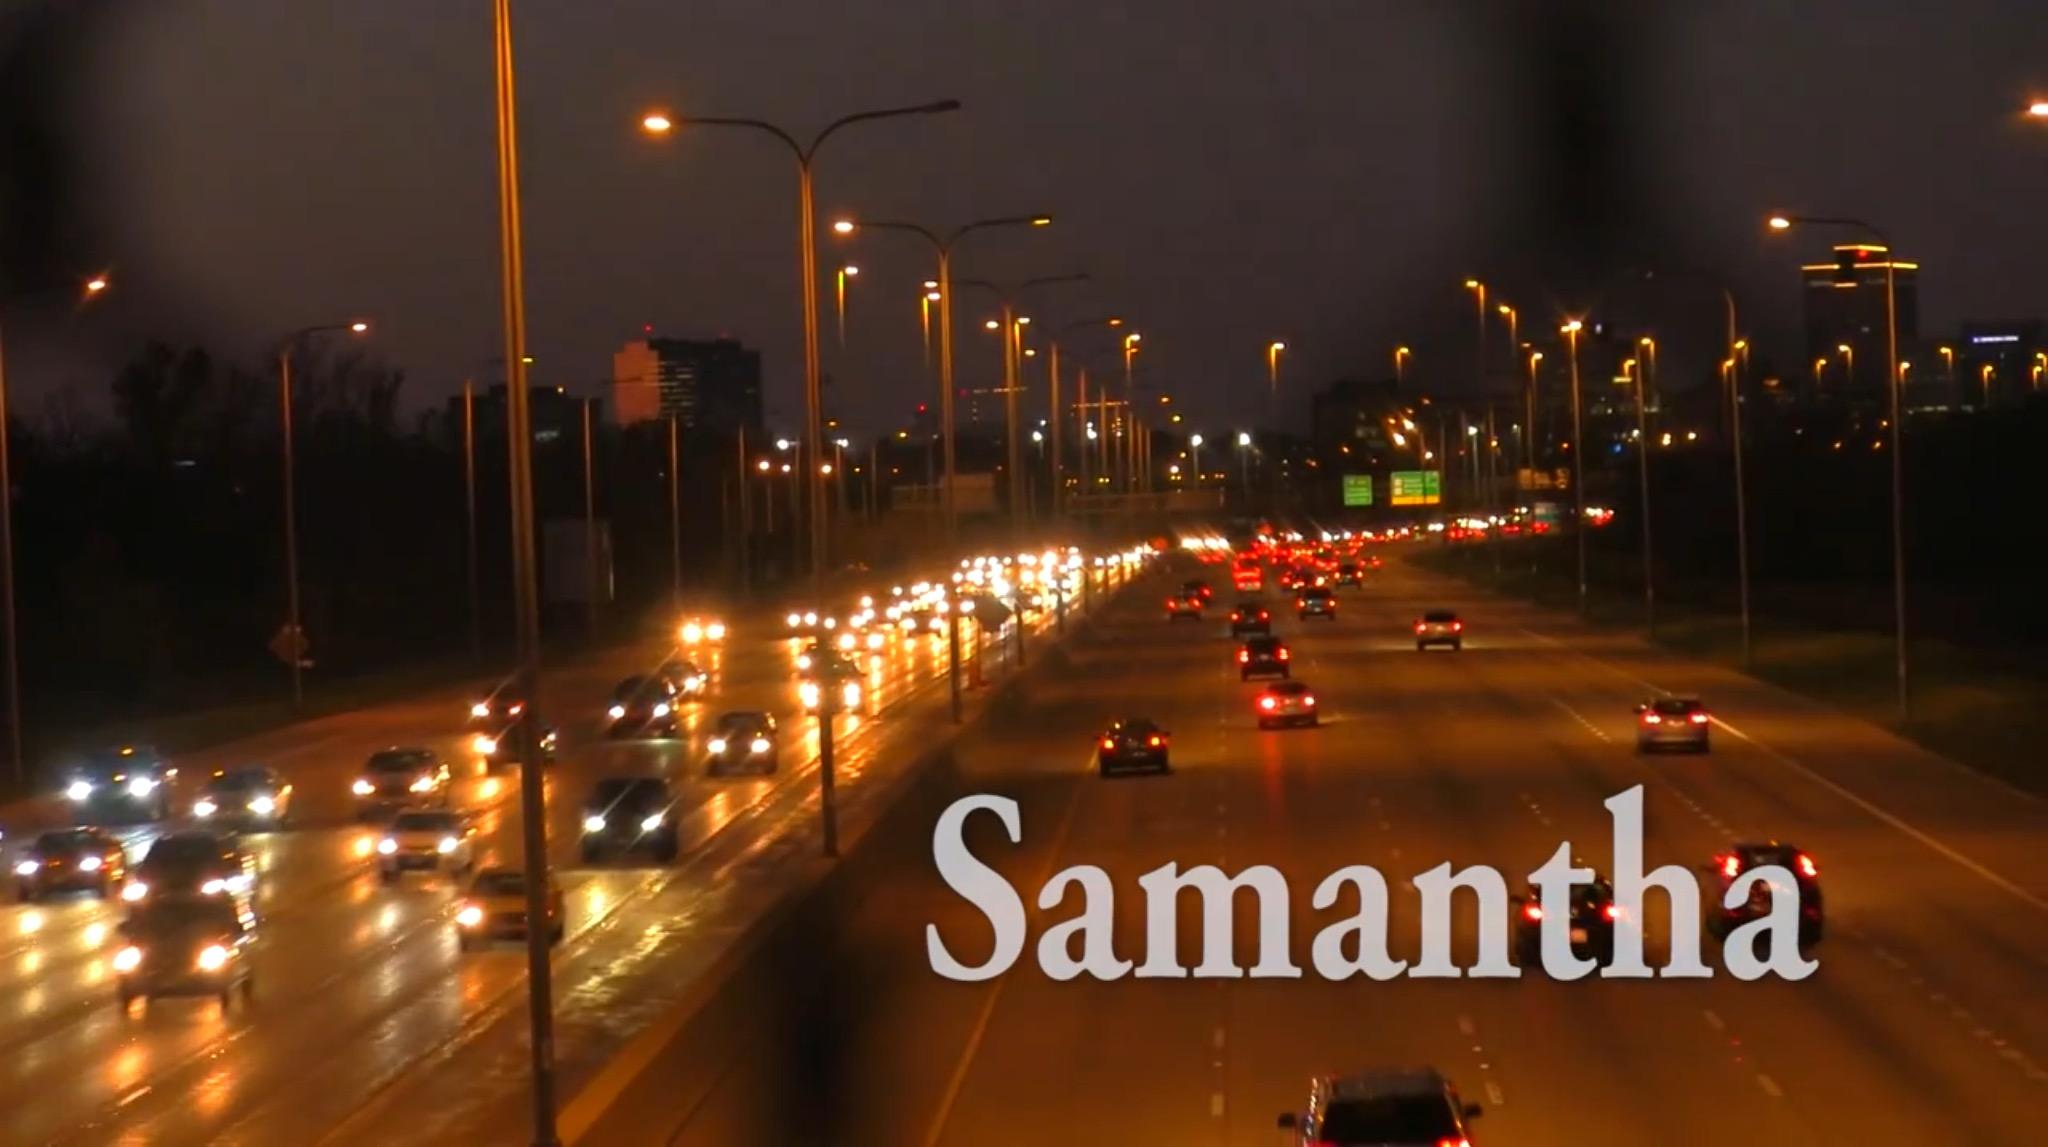 """NOIR: Sophomores Ben Jaeger and Nic Baggetto submitted their film """"Samantha"""" to the 2016 CinèStudent Film Festival. Branching out from what they made last year, their film is, in their words, a """"neo-noir revenge fantasy."""""""